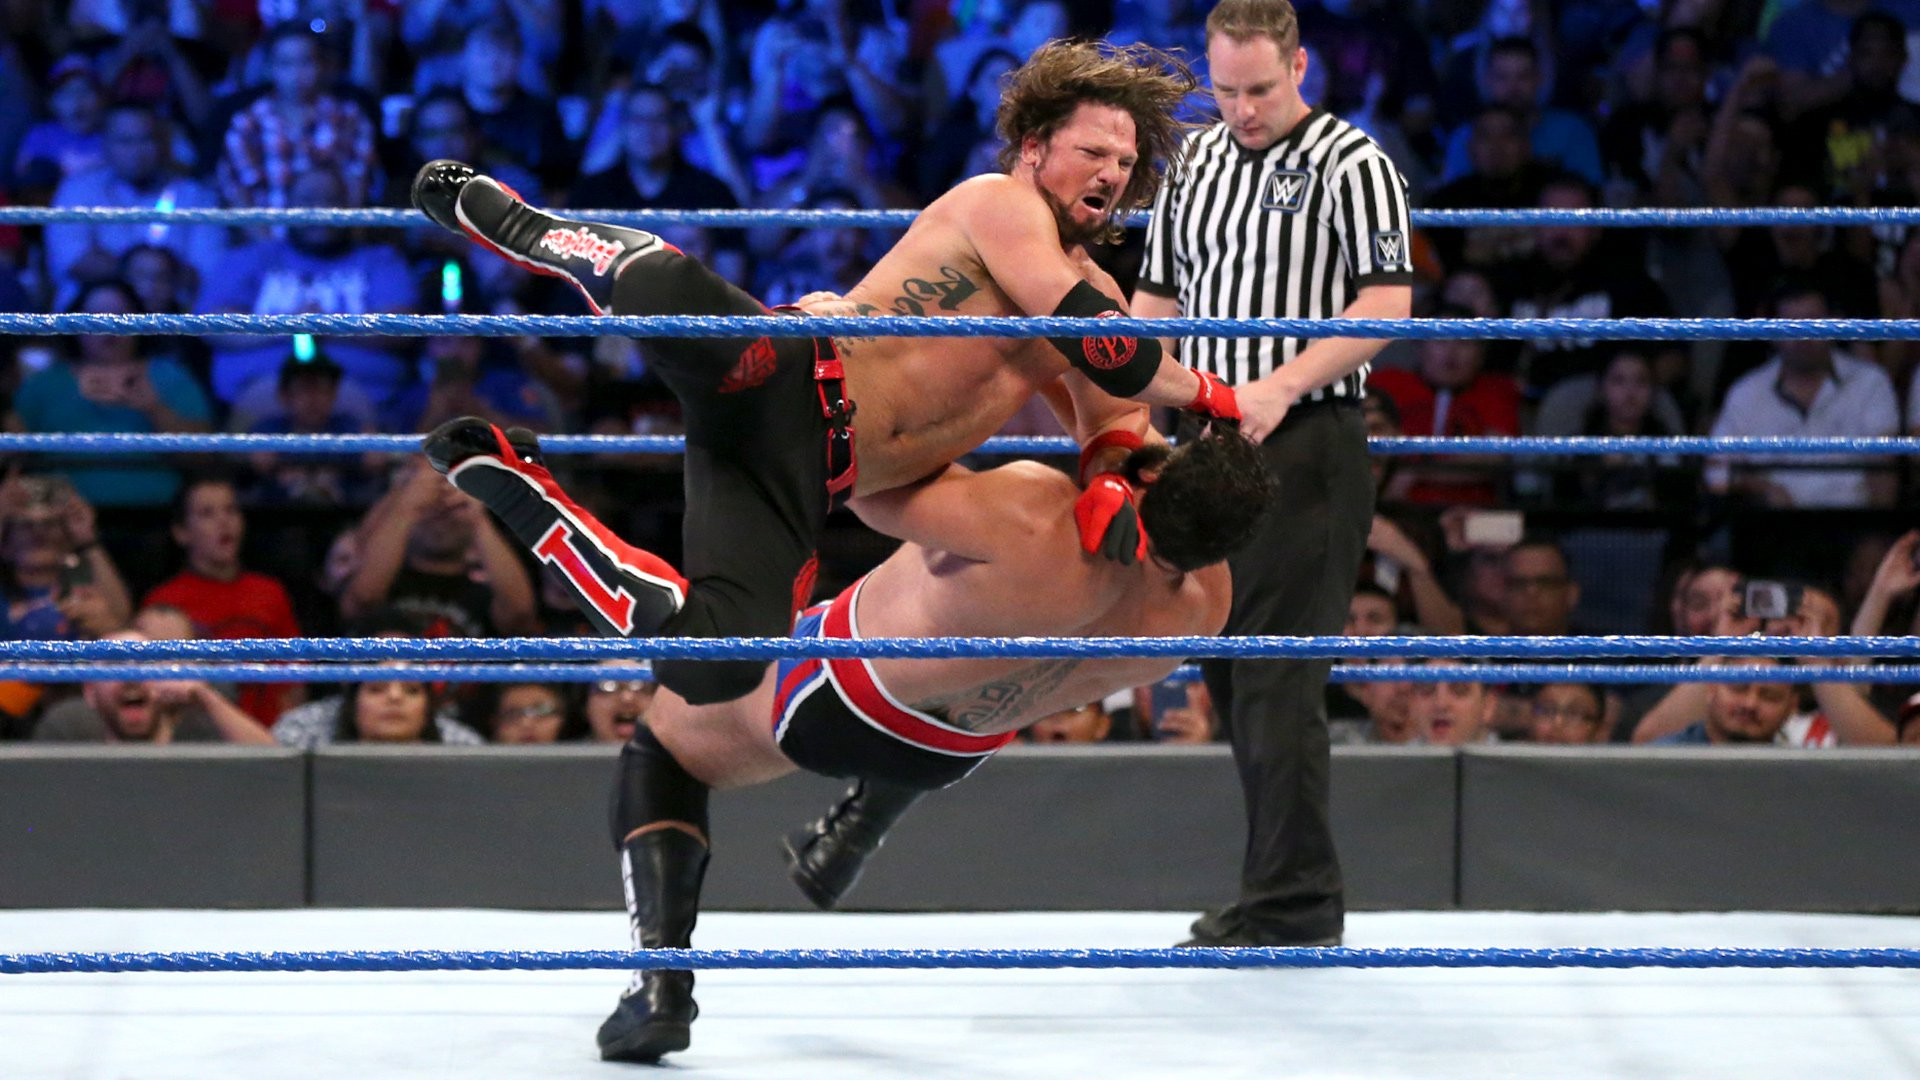 Styles tattoos Rusev with the Phenomenal Forearm...